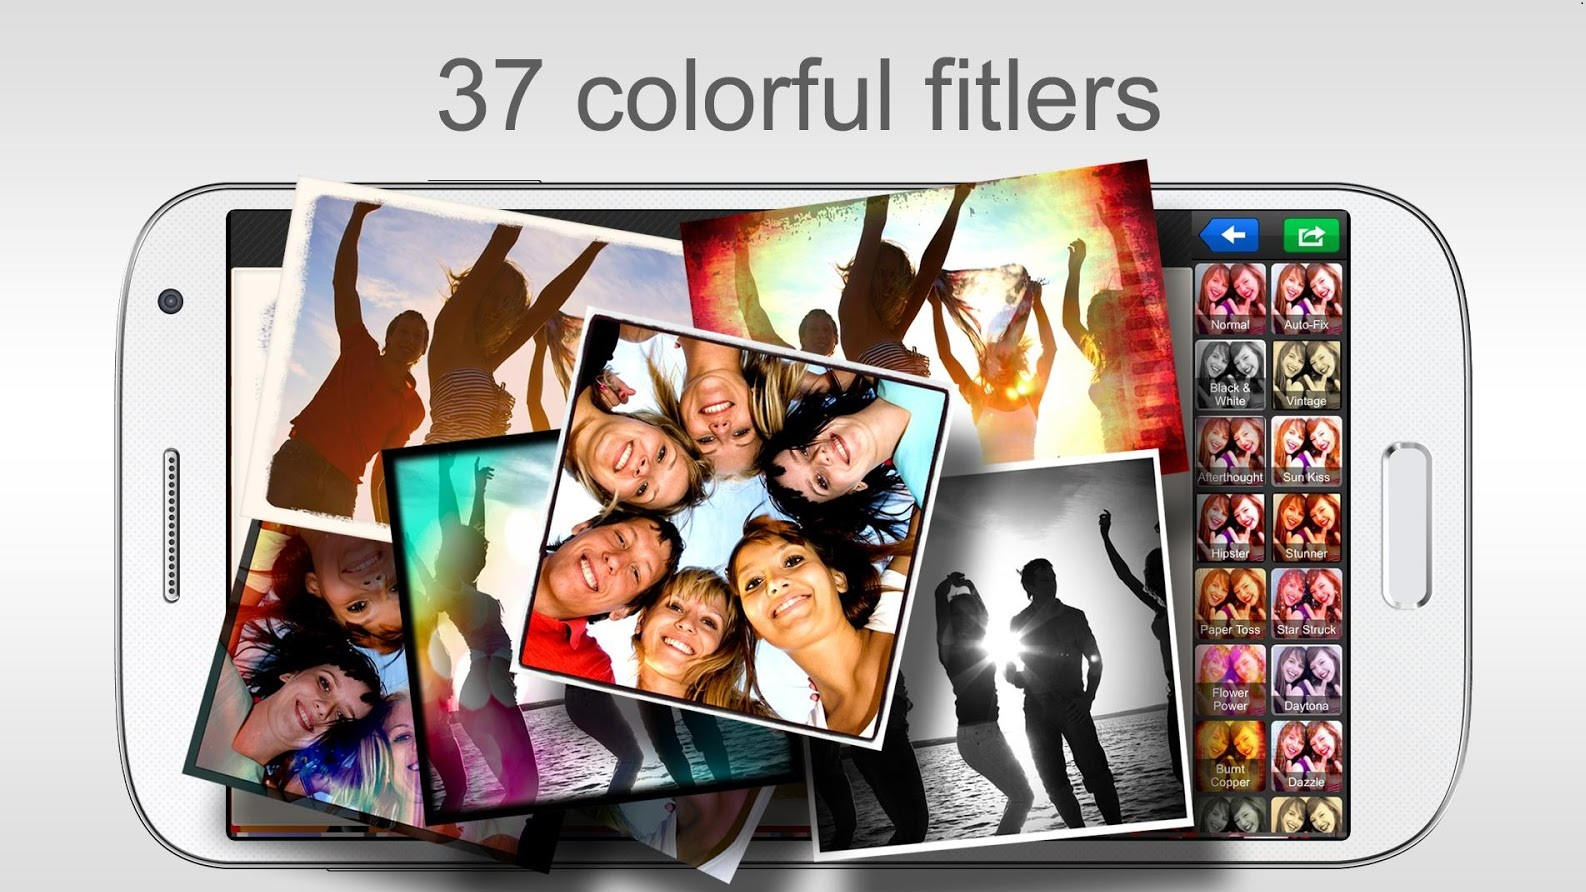 Phone Best Photo Editing Apps For Android Phones top best photo editing apps for android phone